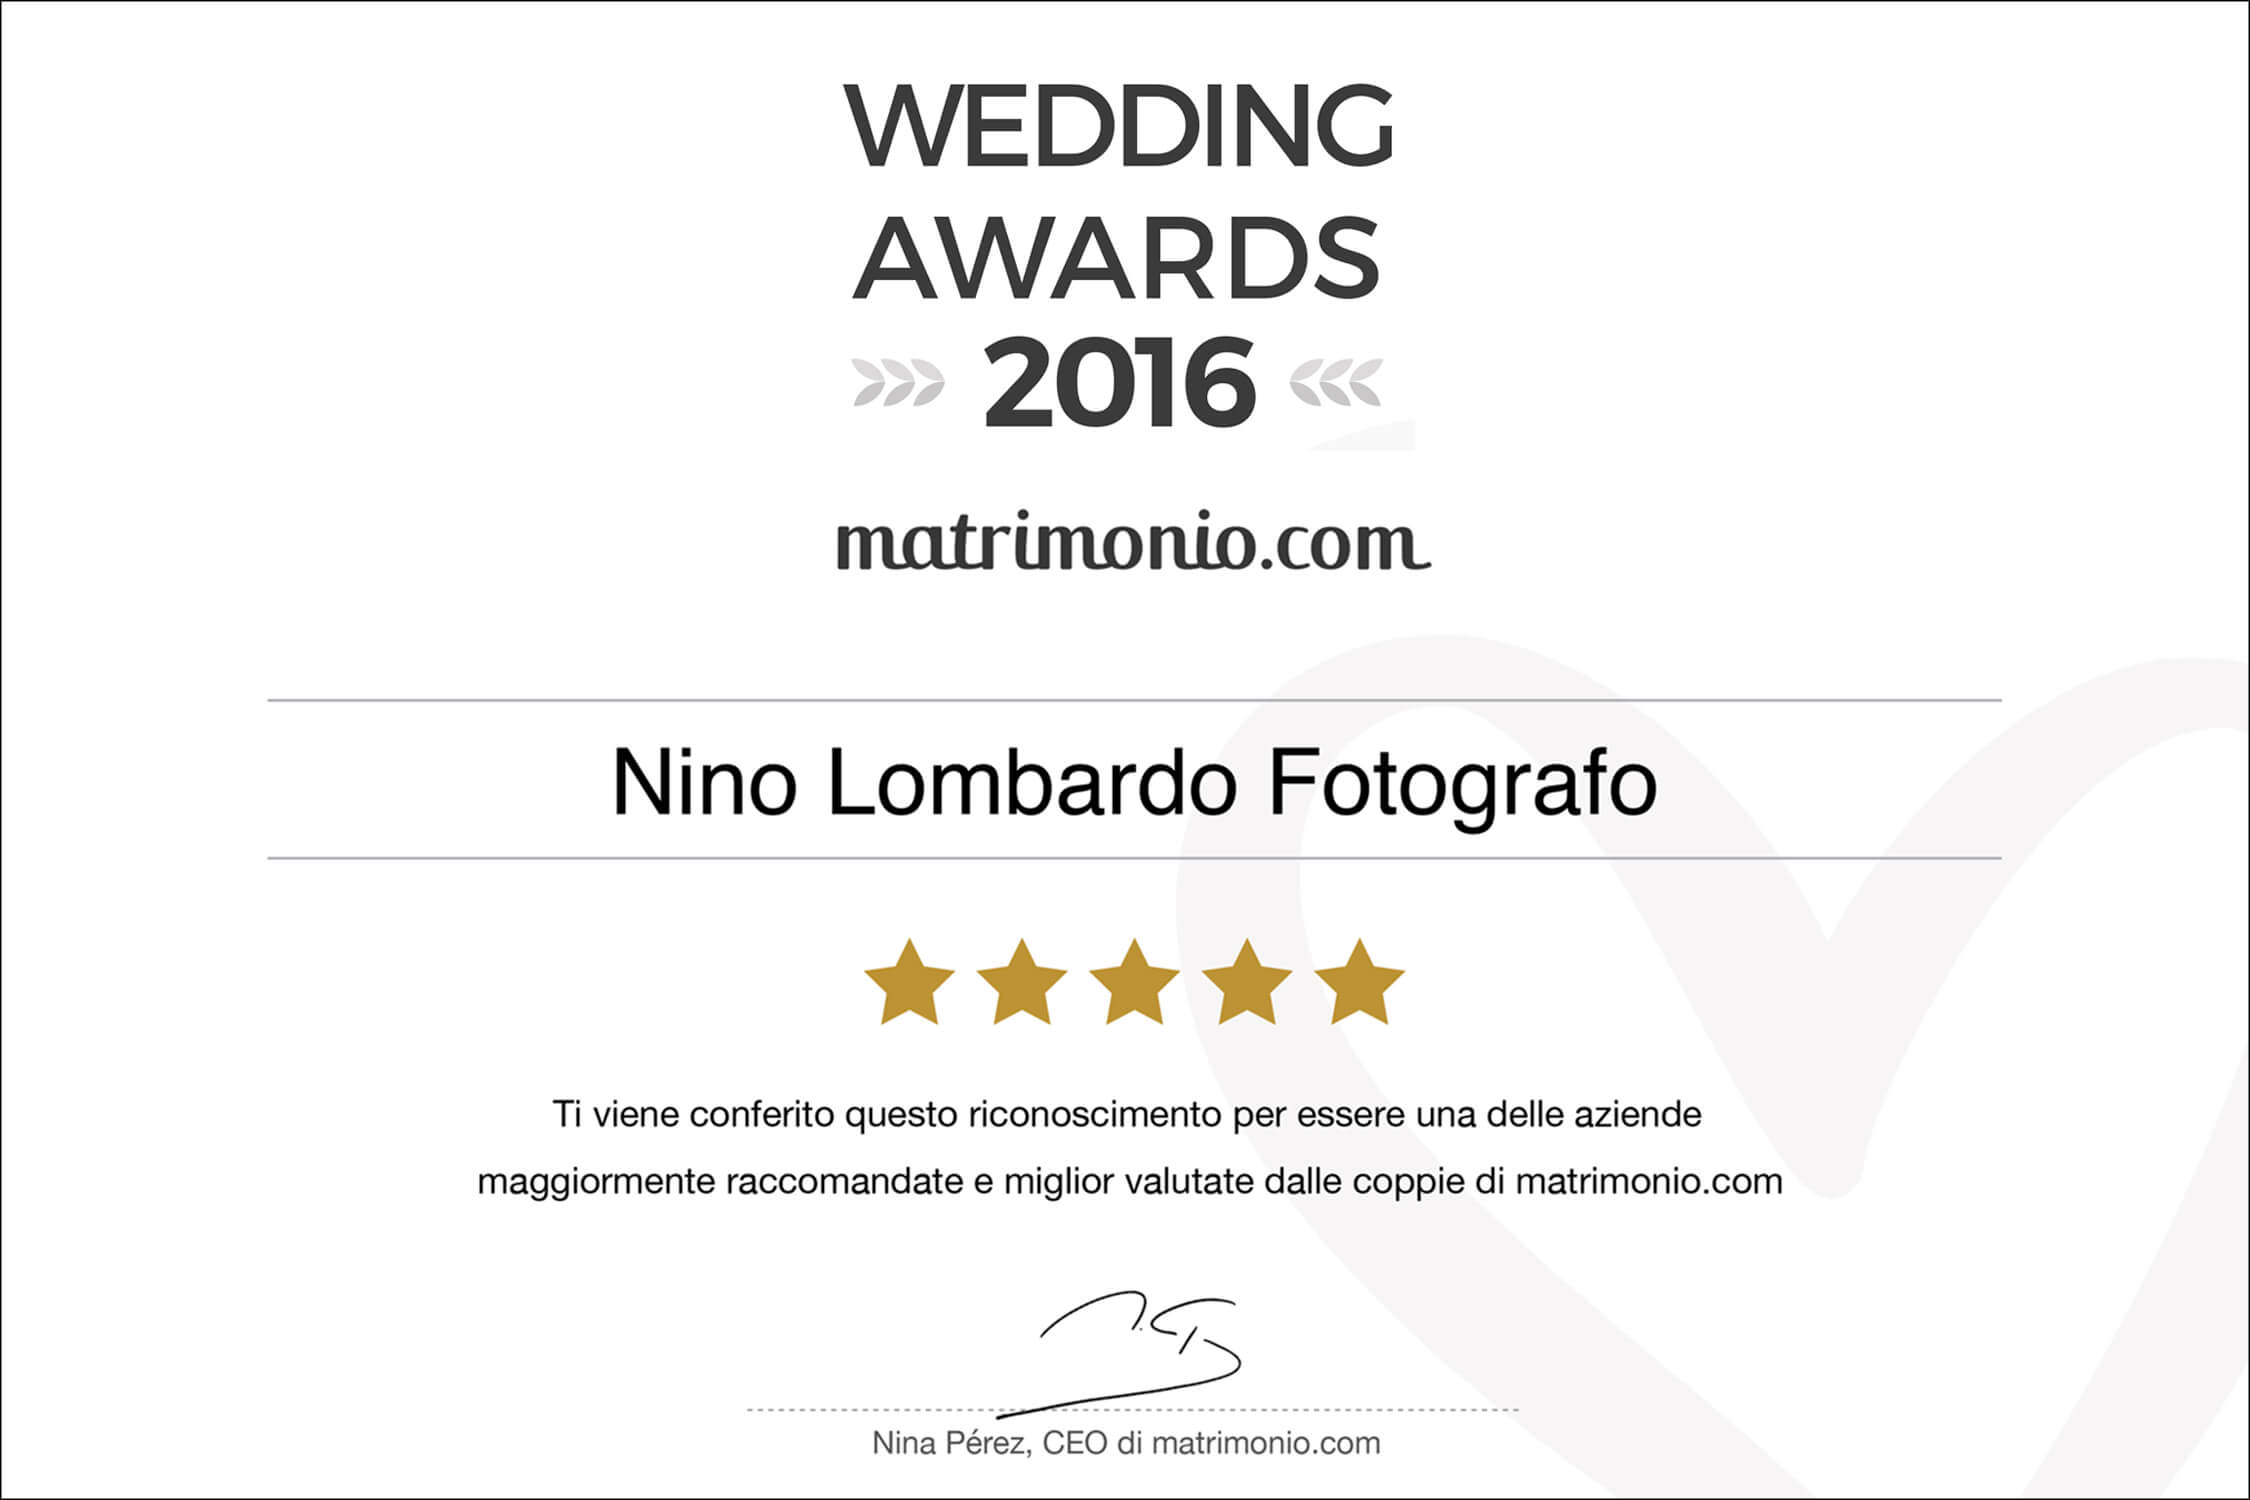 2016 Best Testimonials Wedding Award matrimonio.com Italy Photographer